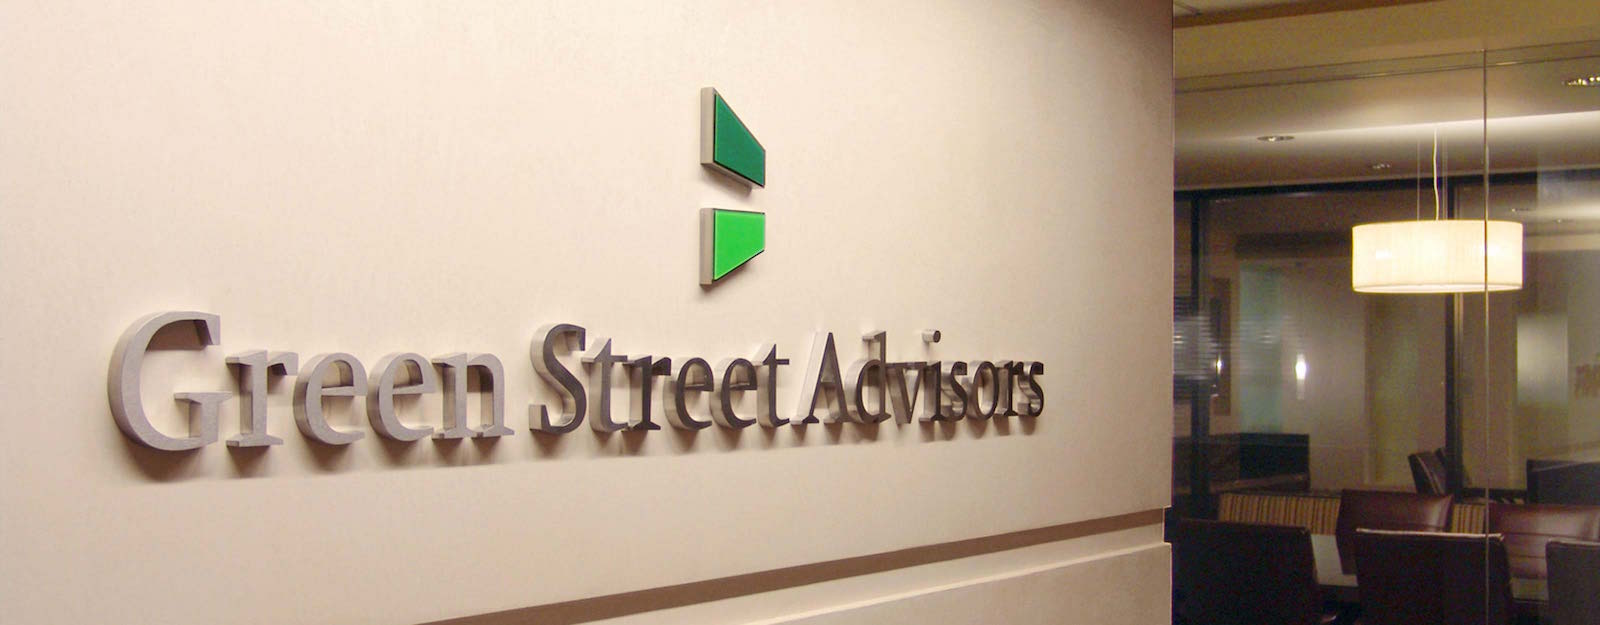 Green Street Advisors sign